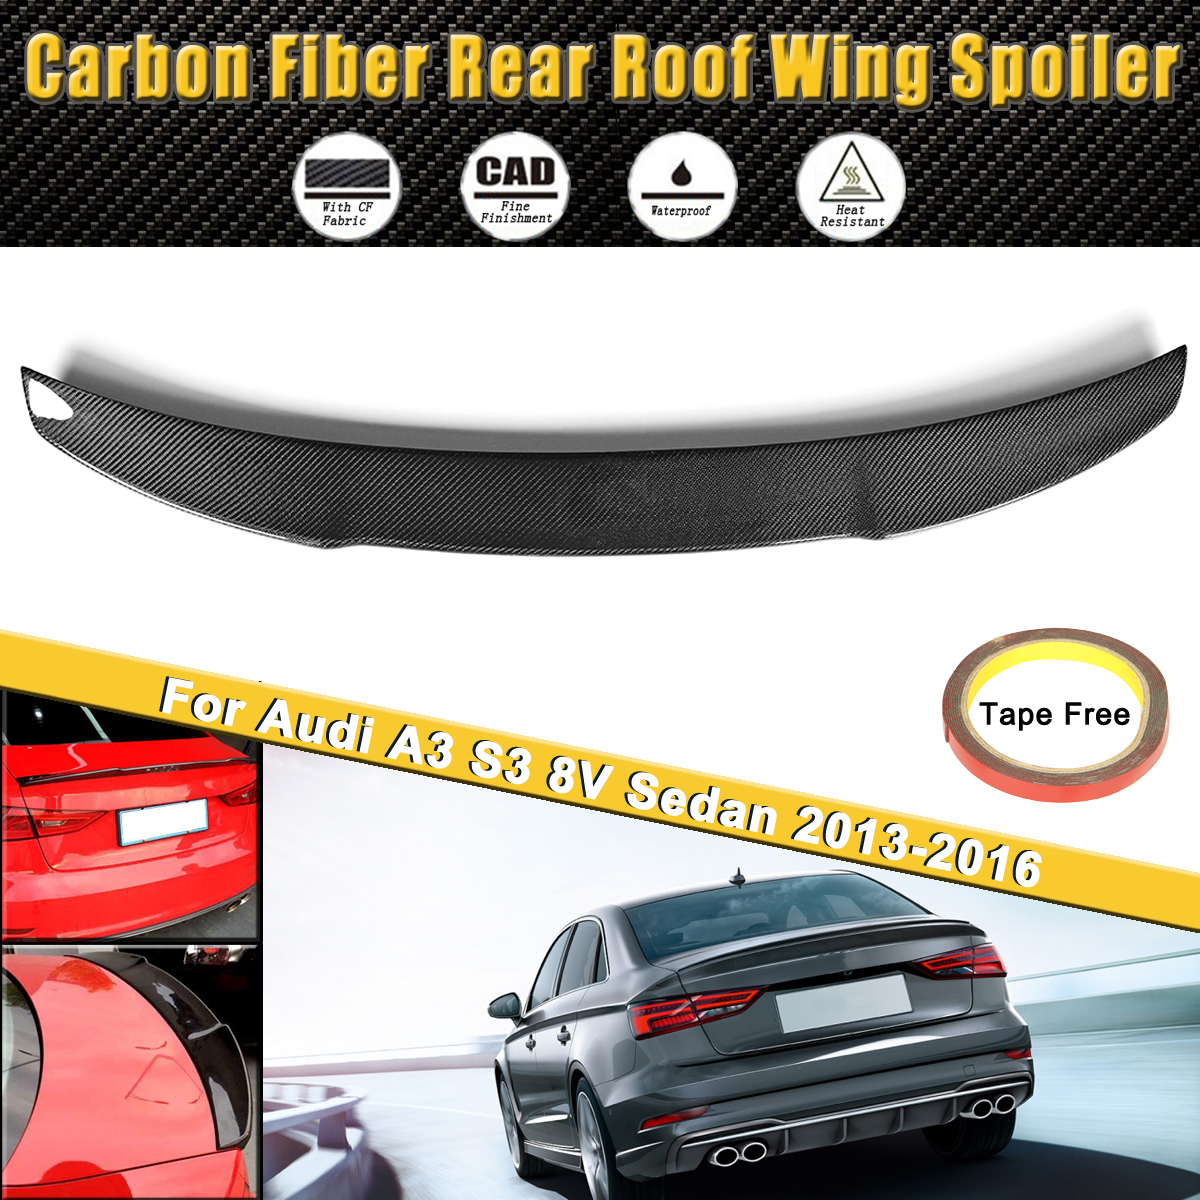 Full Real Carbon Fiber Auto Rear Trunk Lip Roof Wing Spoiler Fit For Audi A3 S3 8V Sedan 2013-2016 carbon fiber auto car rear trunk wing lip spoiler for audi for a3